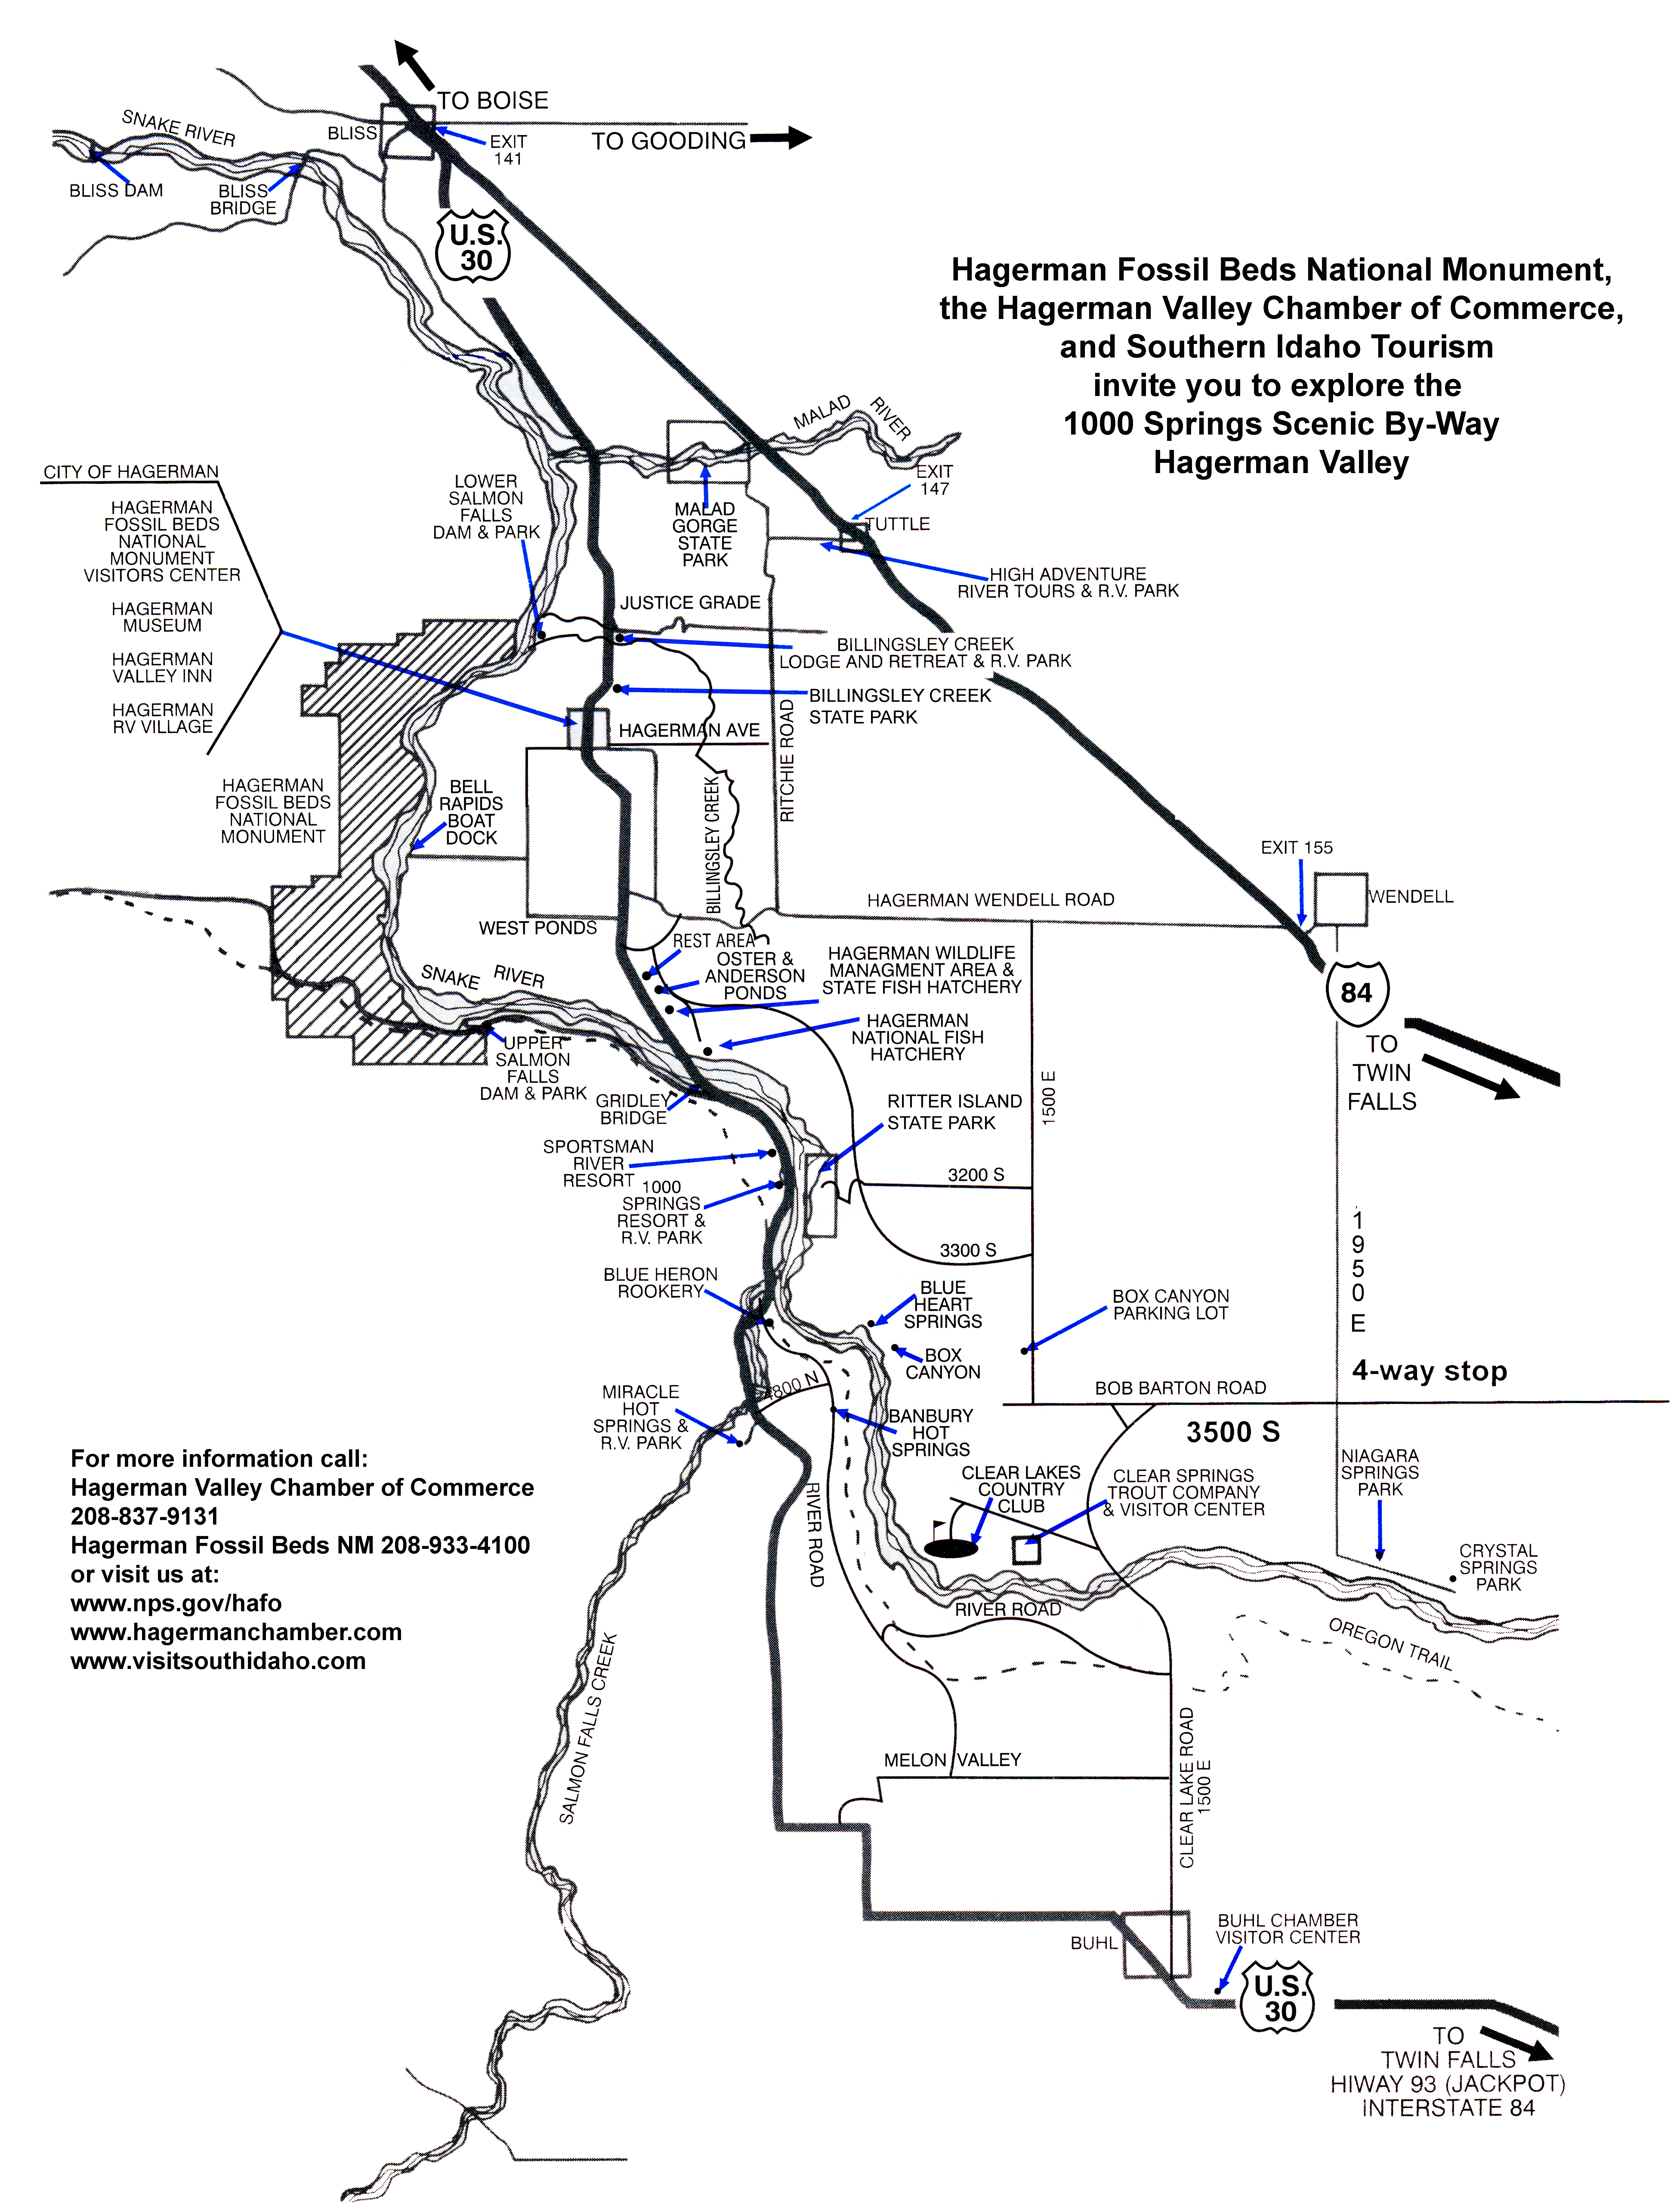 Hagerman Idaho Map.Maps Hagerman Fossil Beds National Monument U S National Park